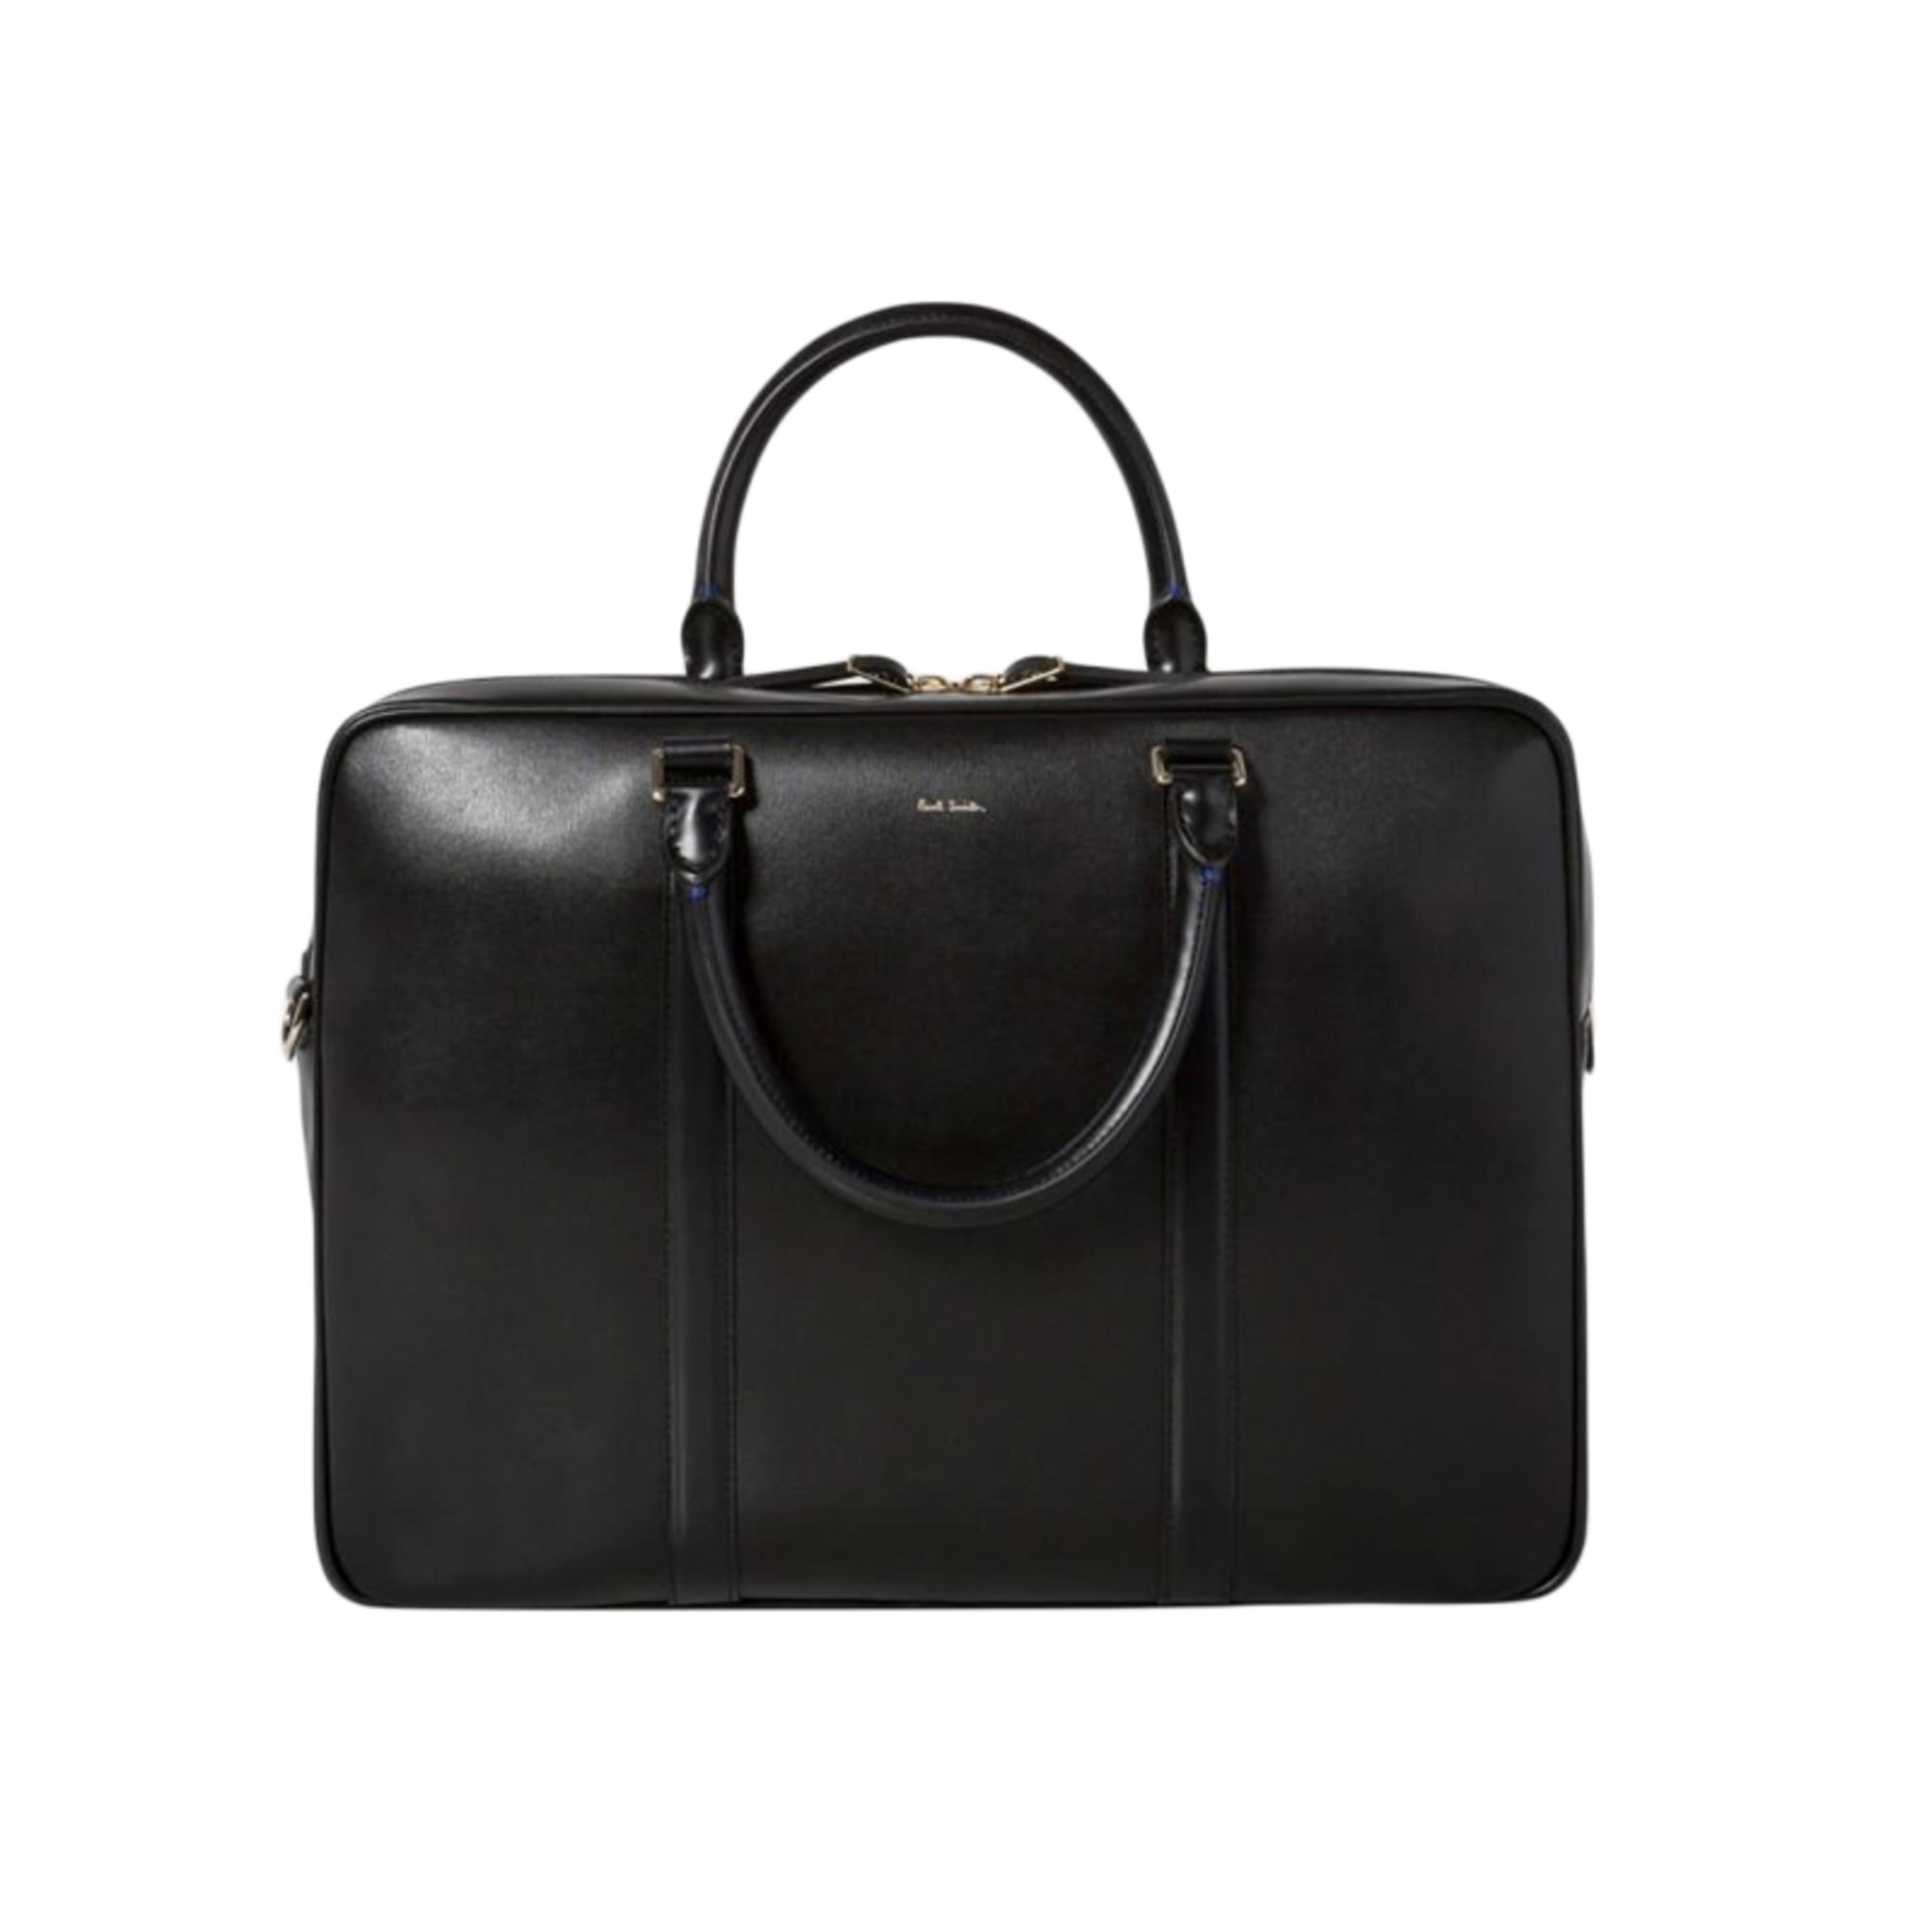 Porte document, serviette PAUL SMITH cuir noir